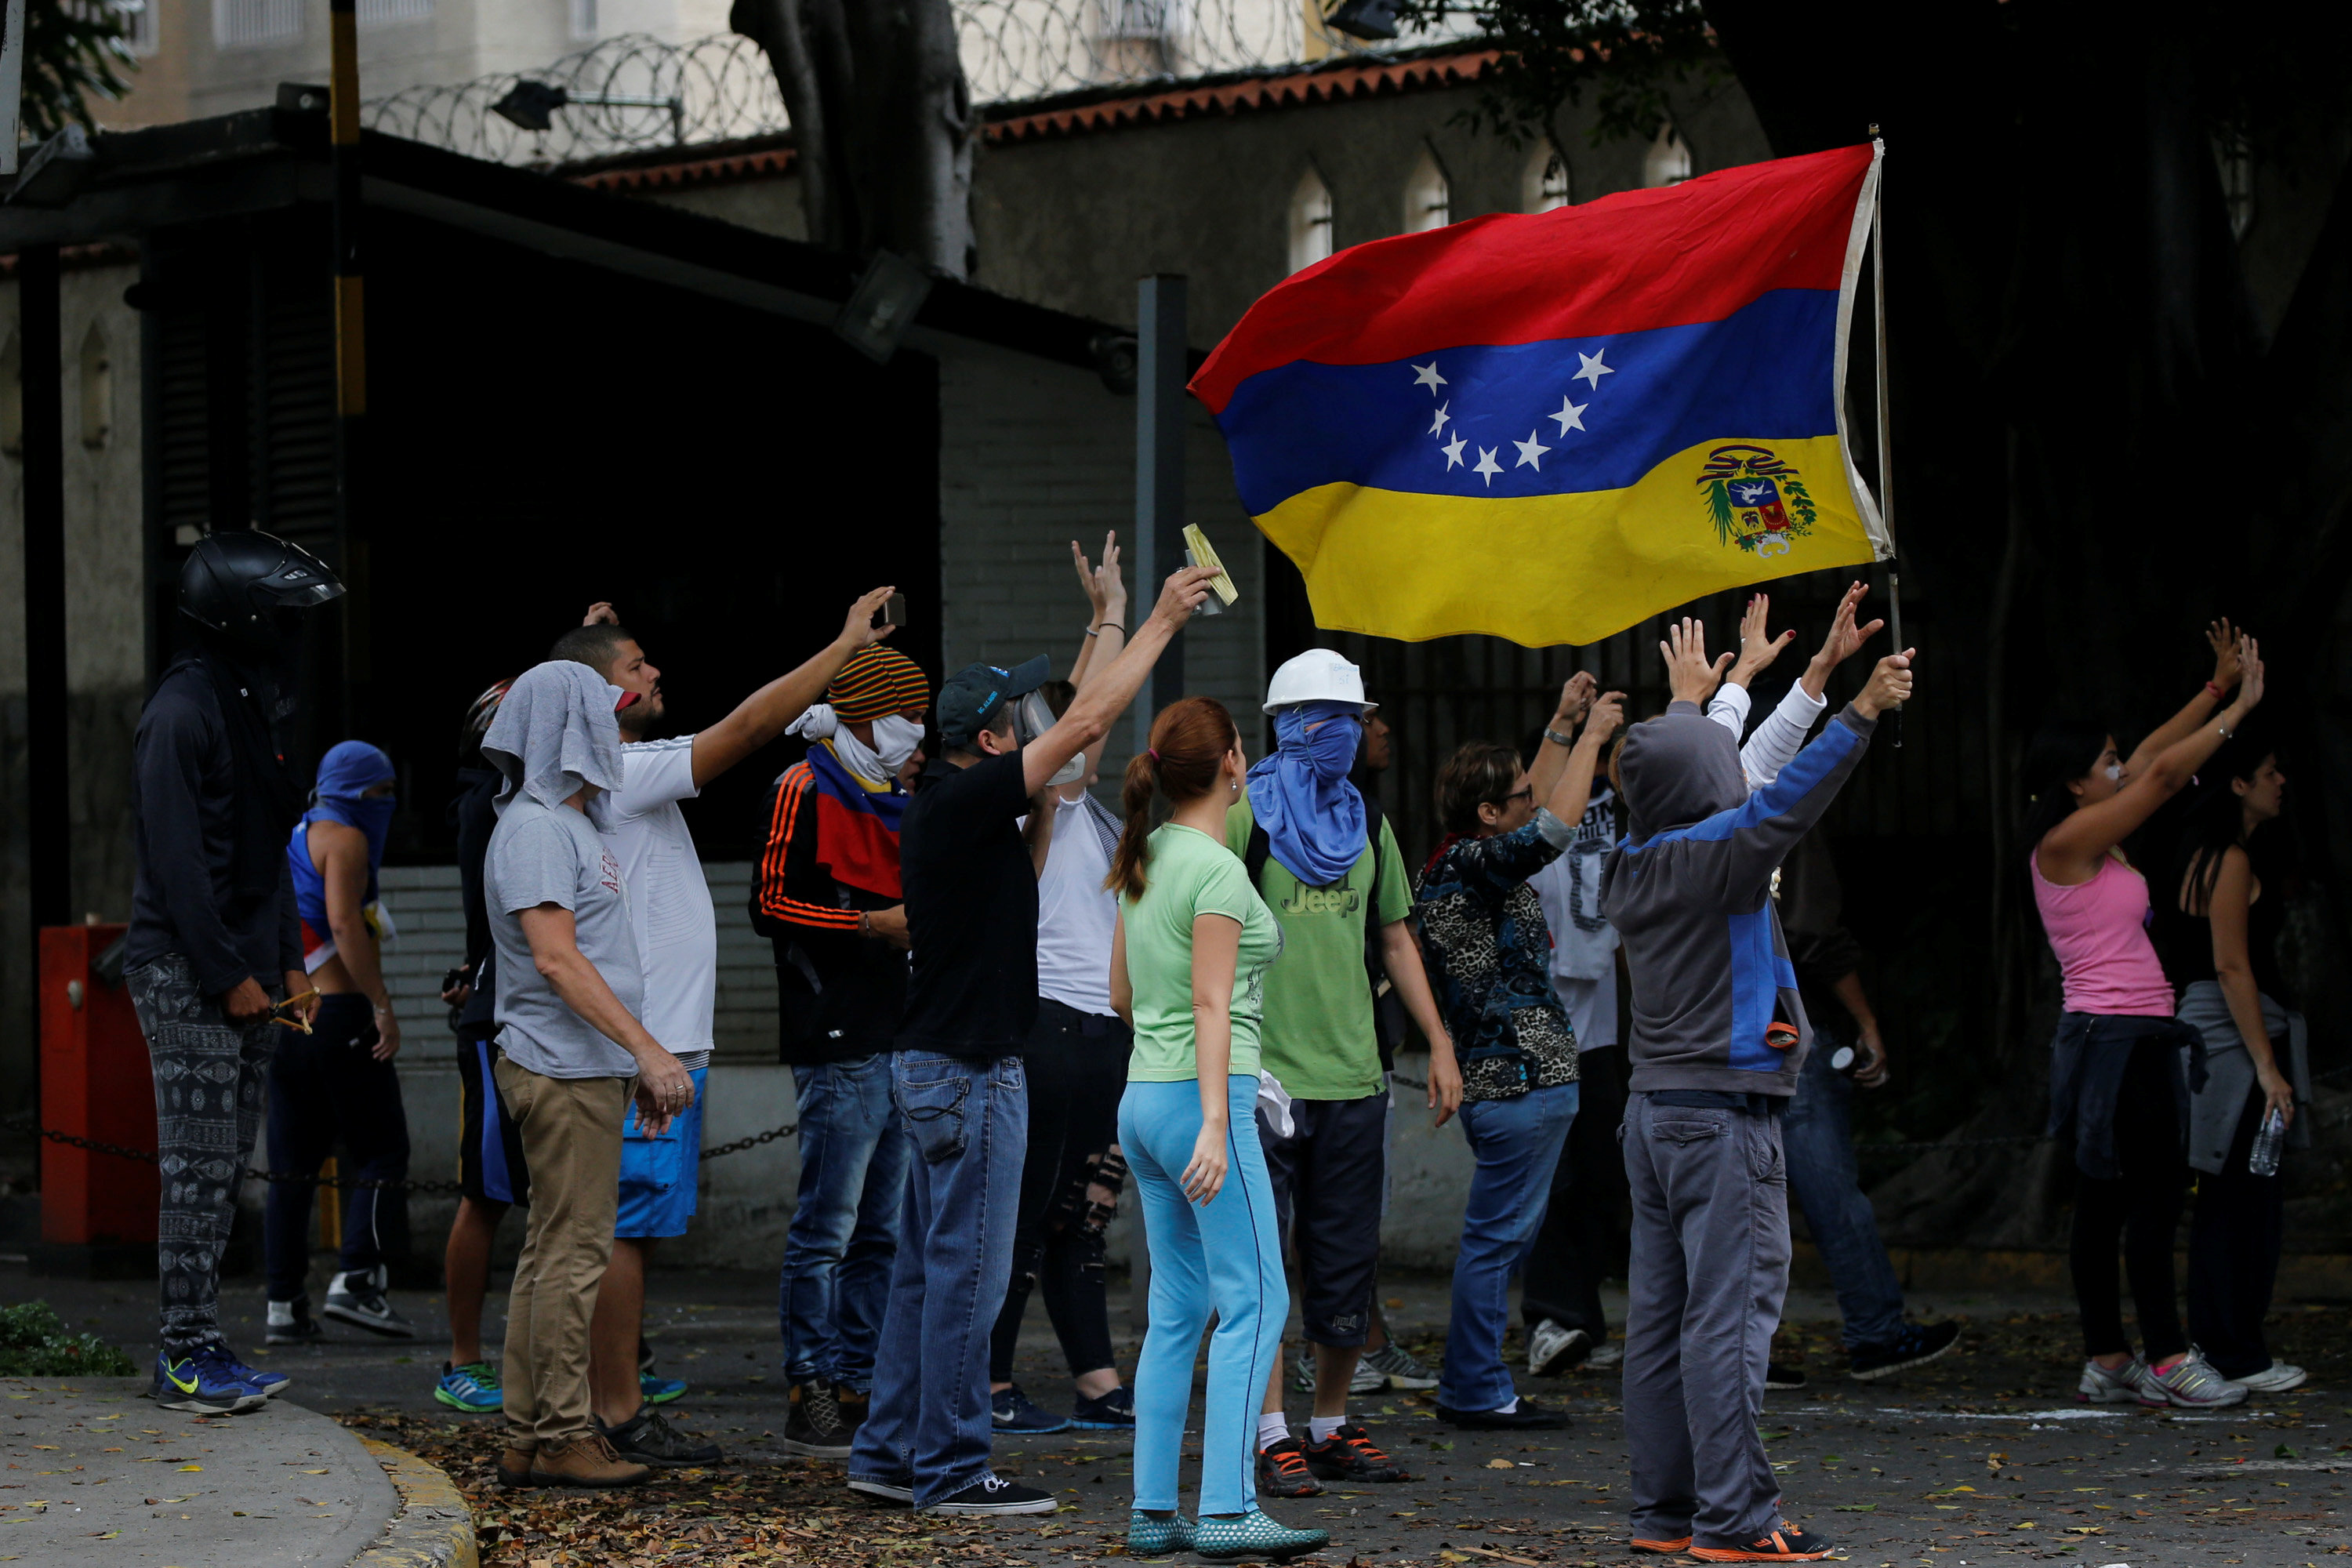 Opposition supporters wave a Venezuelan national flag as they clash with Venezuelan National guards during a protest against Venezuela's President Nicolas Maduro's government in Caracas, Venezuela on May 2, 2017. (REUTERS/Carlos Garcia Rawlins)